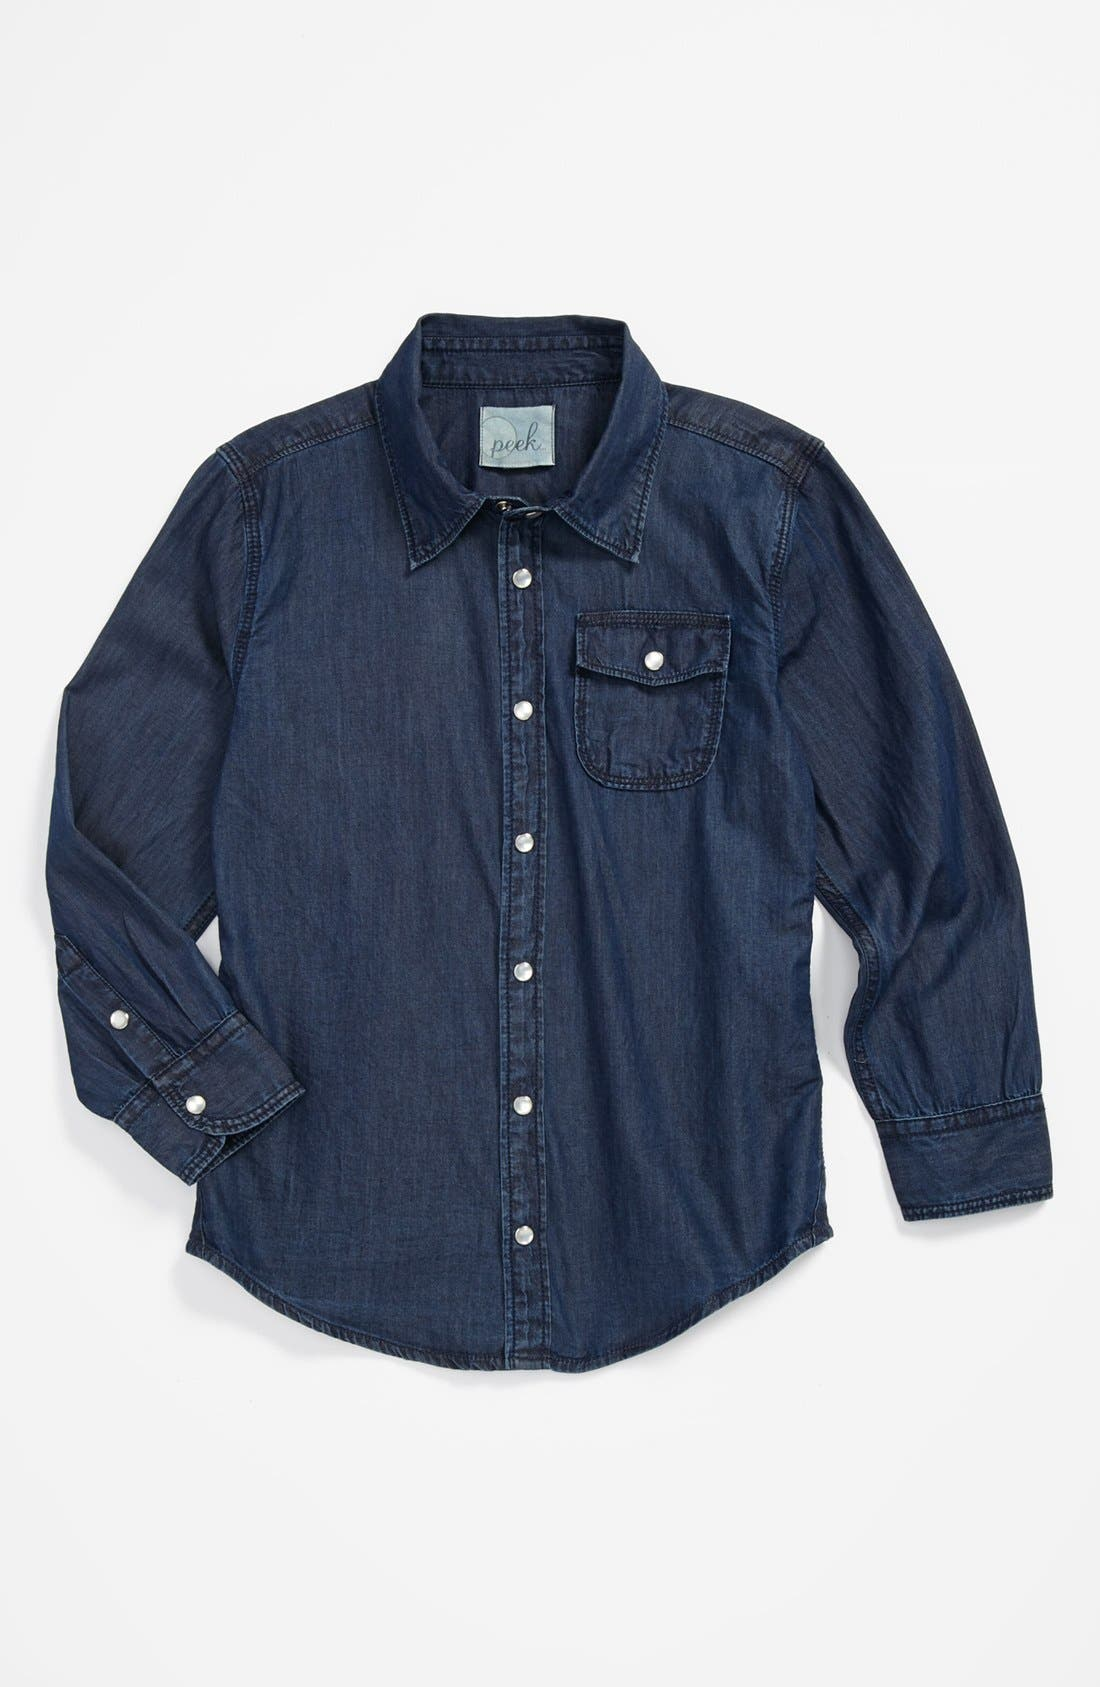 Alternate Image 1 Selected - Peek 'Logan' Chambray Shirt (Big Boys)